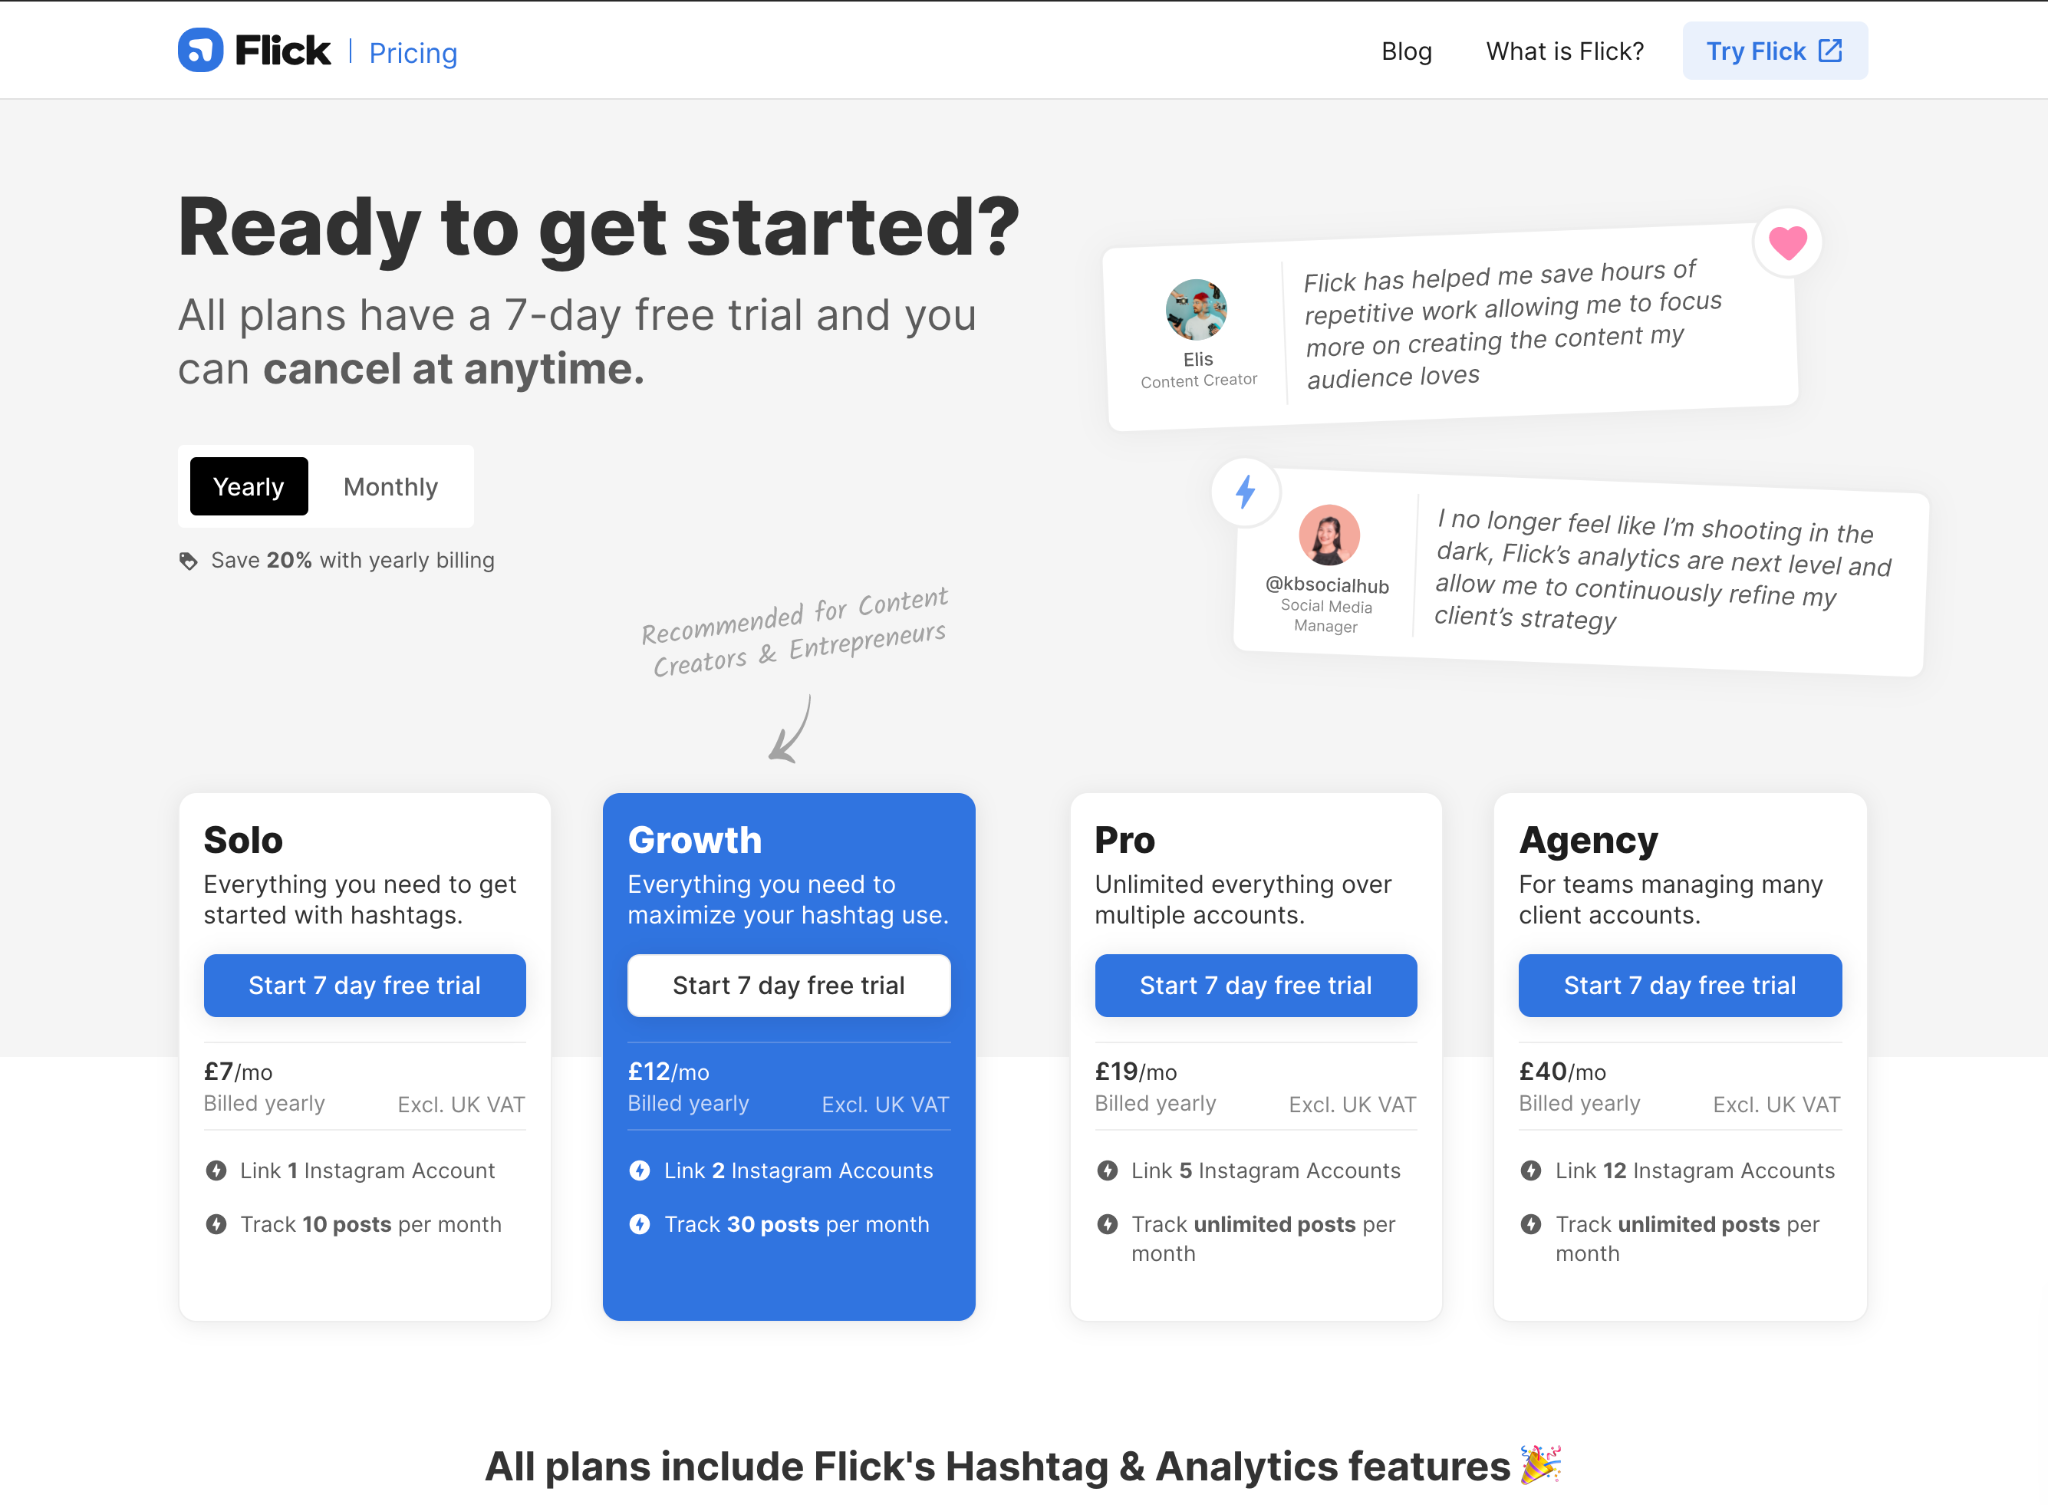 Flick's pricing plans